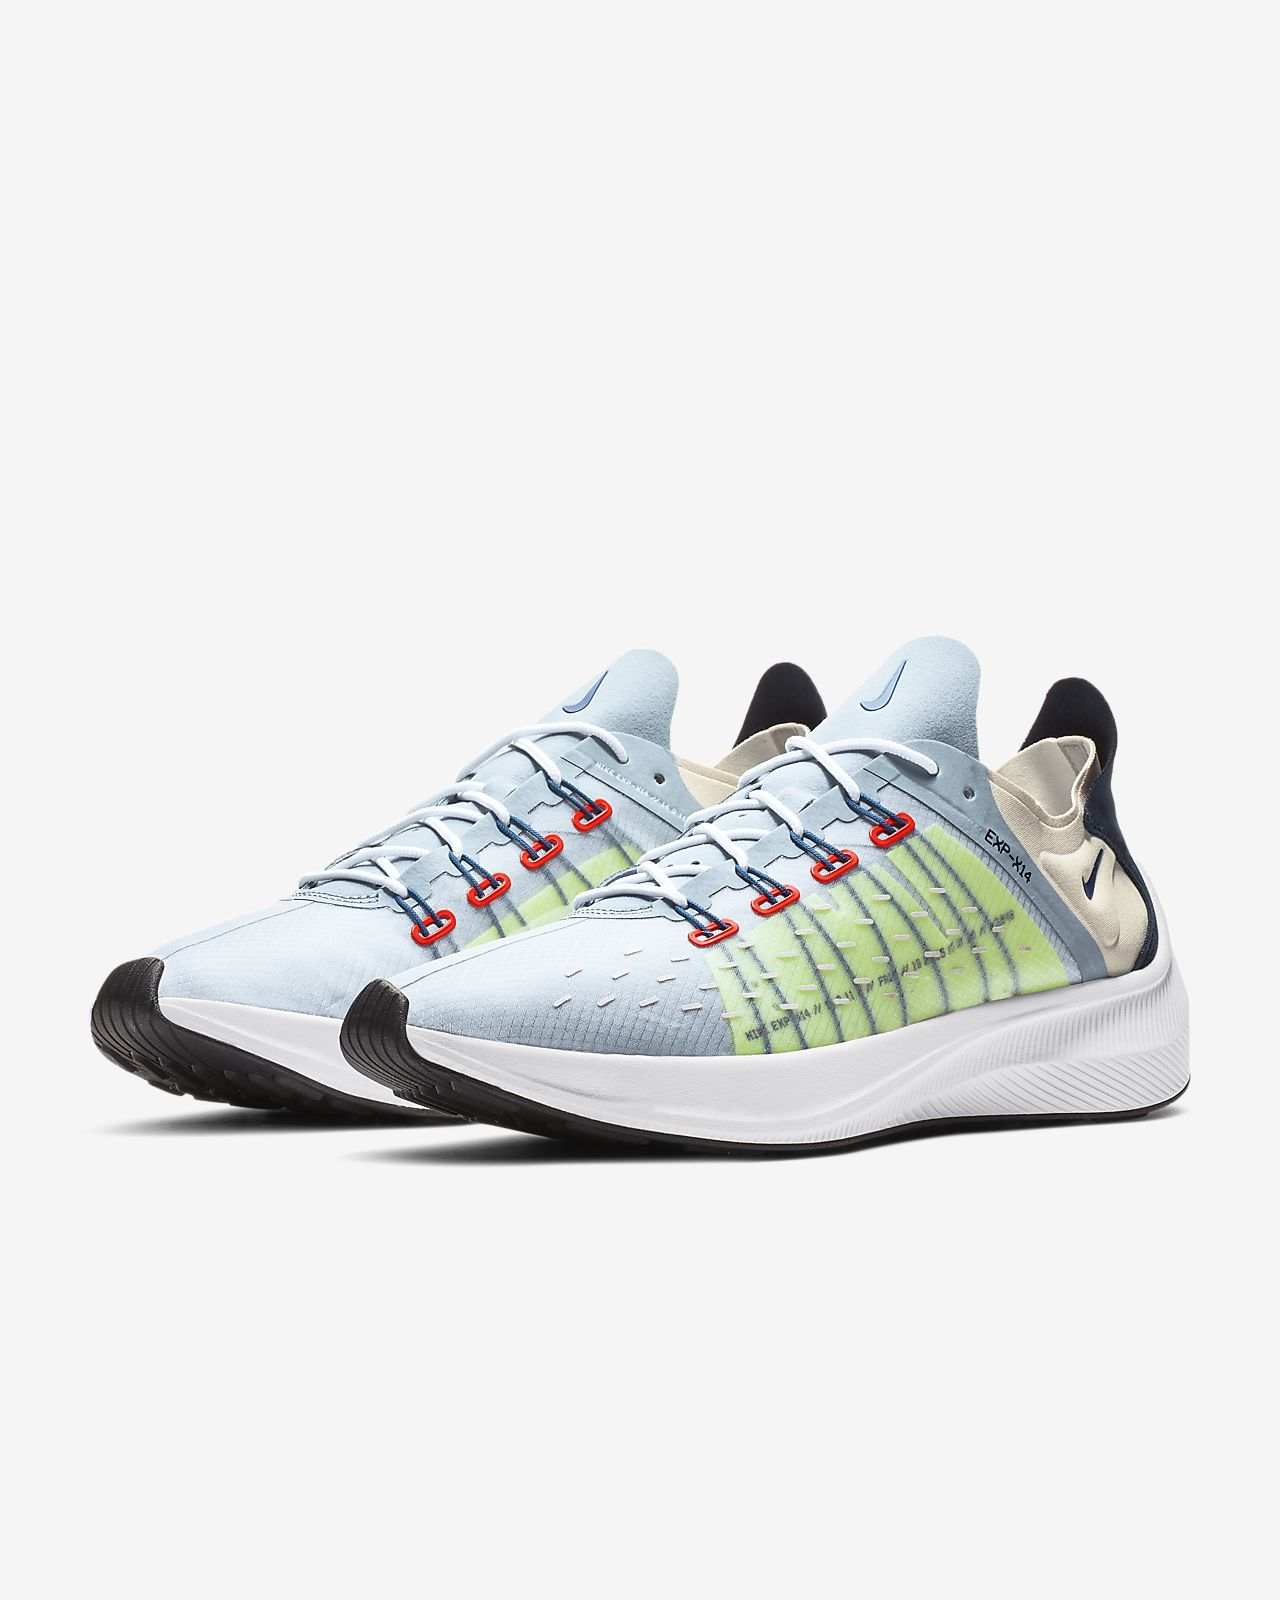 designer fashion b4bee 34119 ... Nike EXP-X14 Men s Shoe